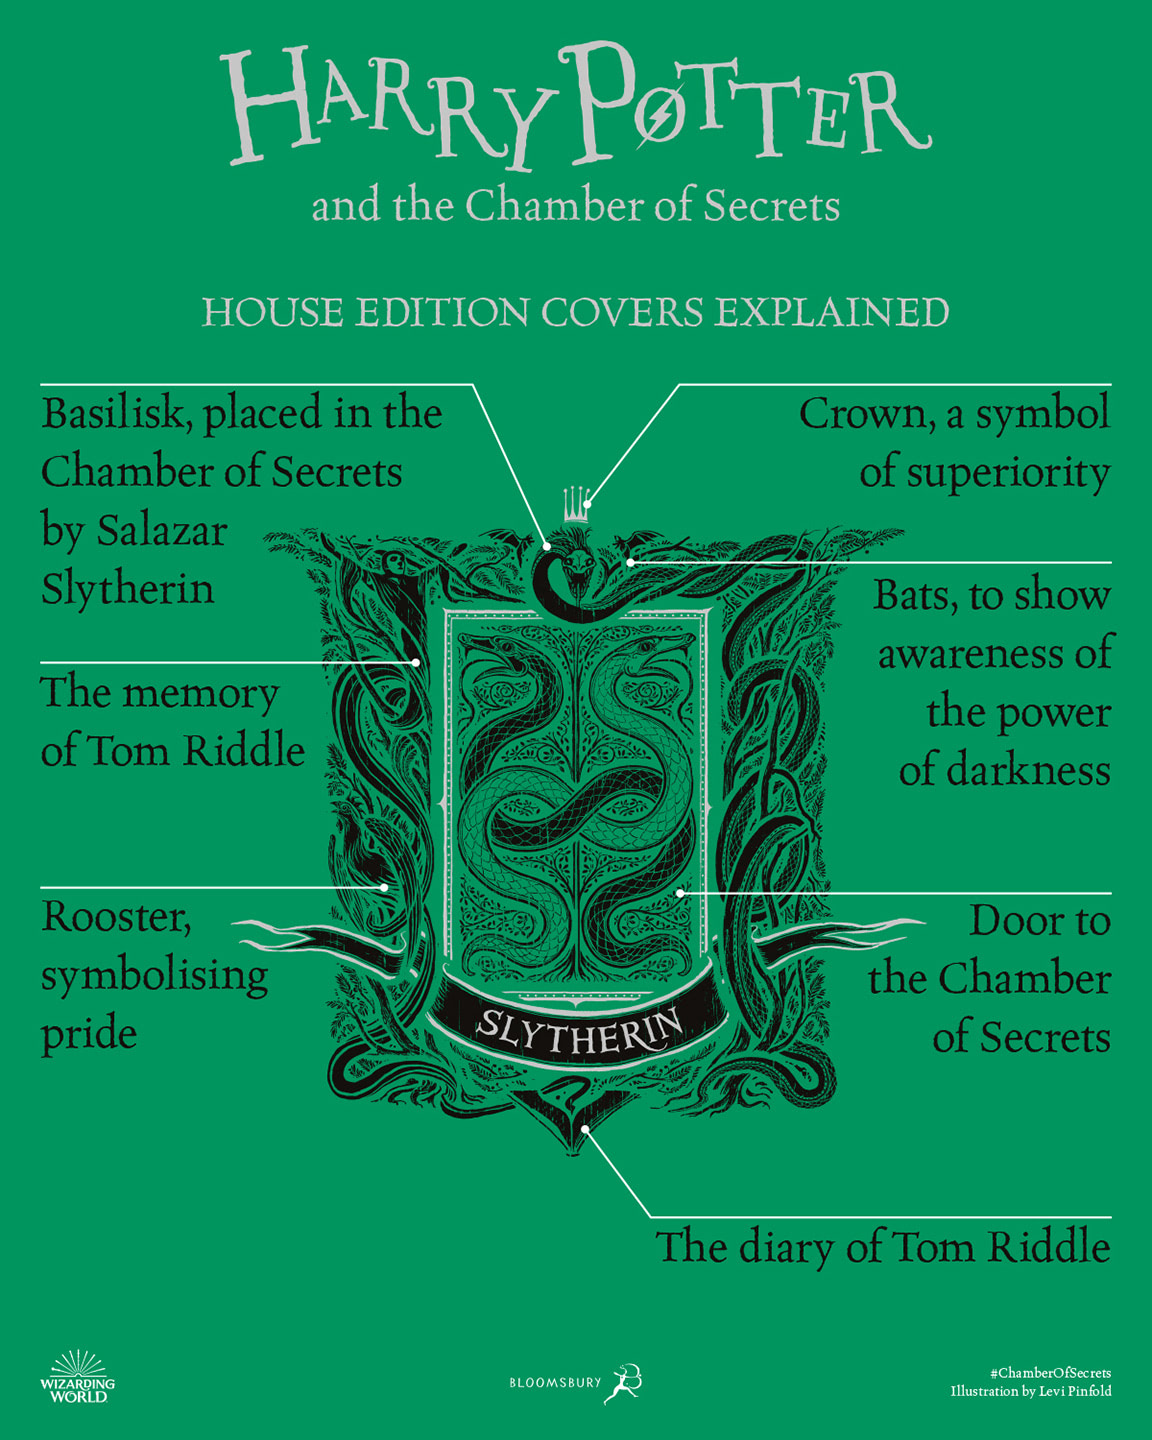 'Chamber of Secrets' house edition cover artwork chart (Slytherin)